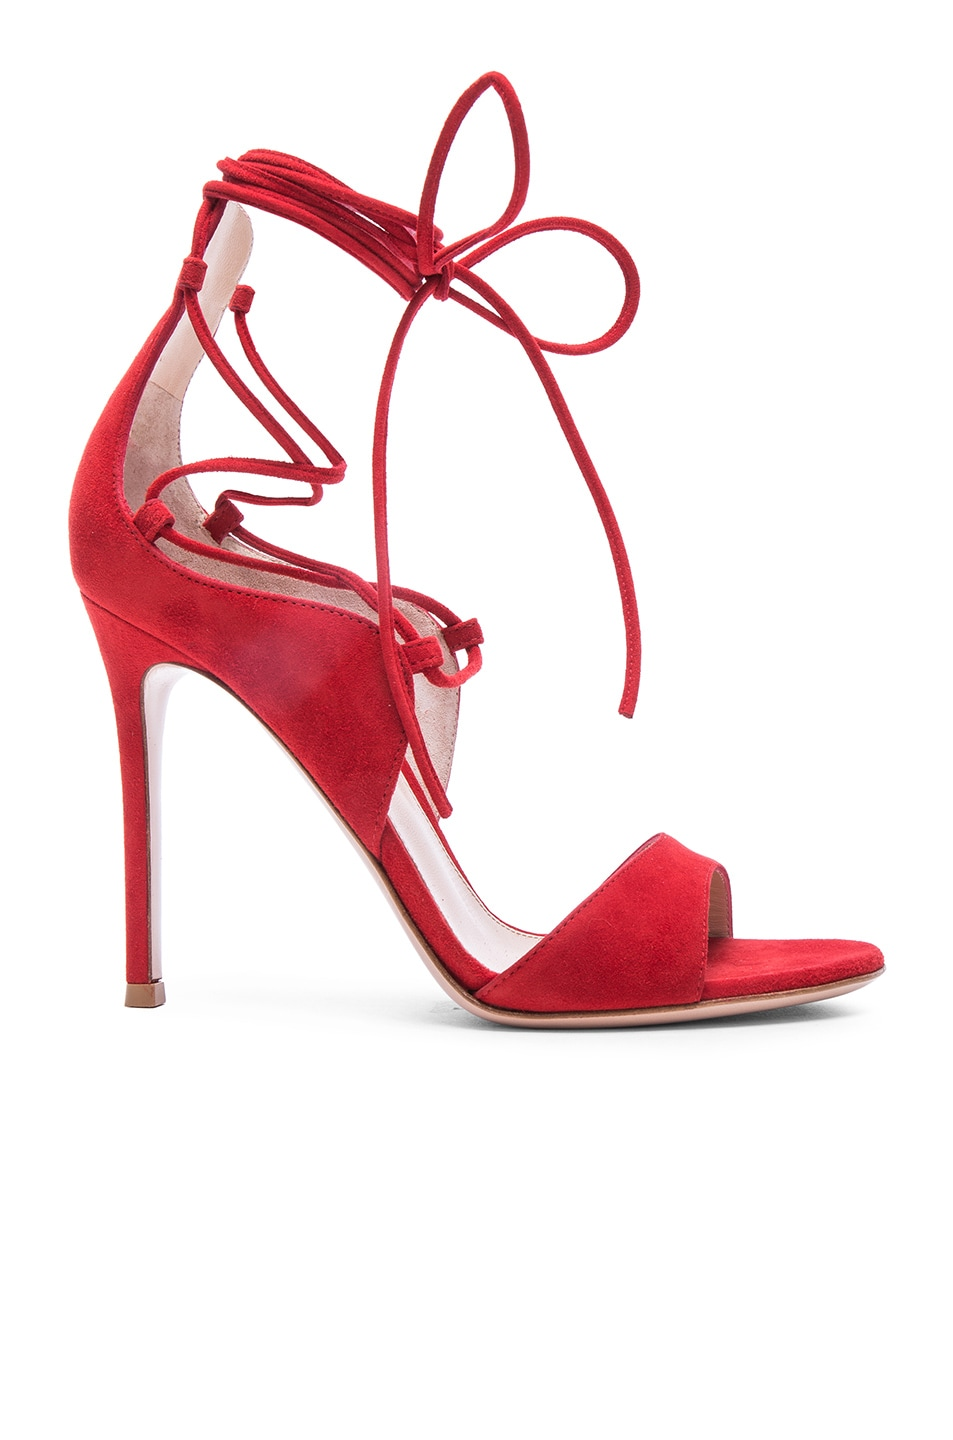 Image 1 of Gianvito Rossi Suede Lace Up Heels in Tabasco Red